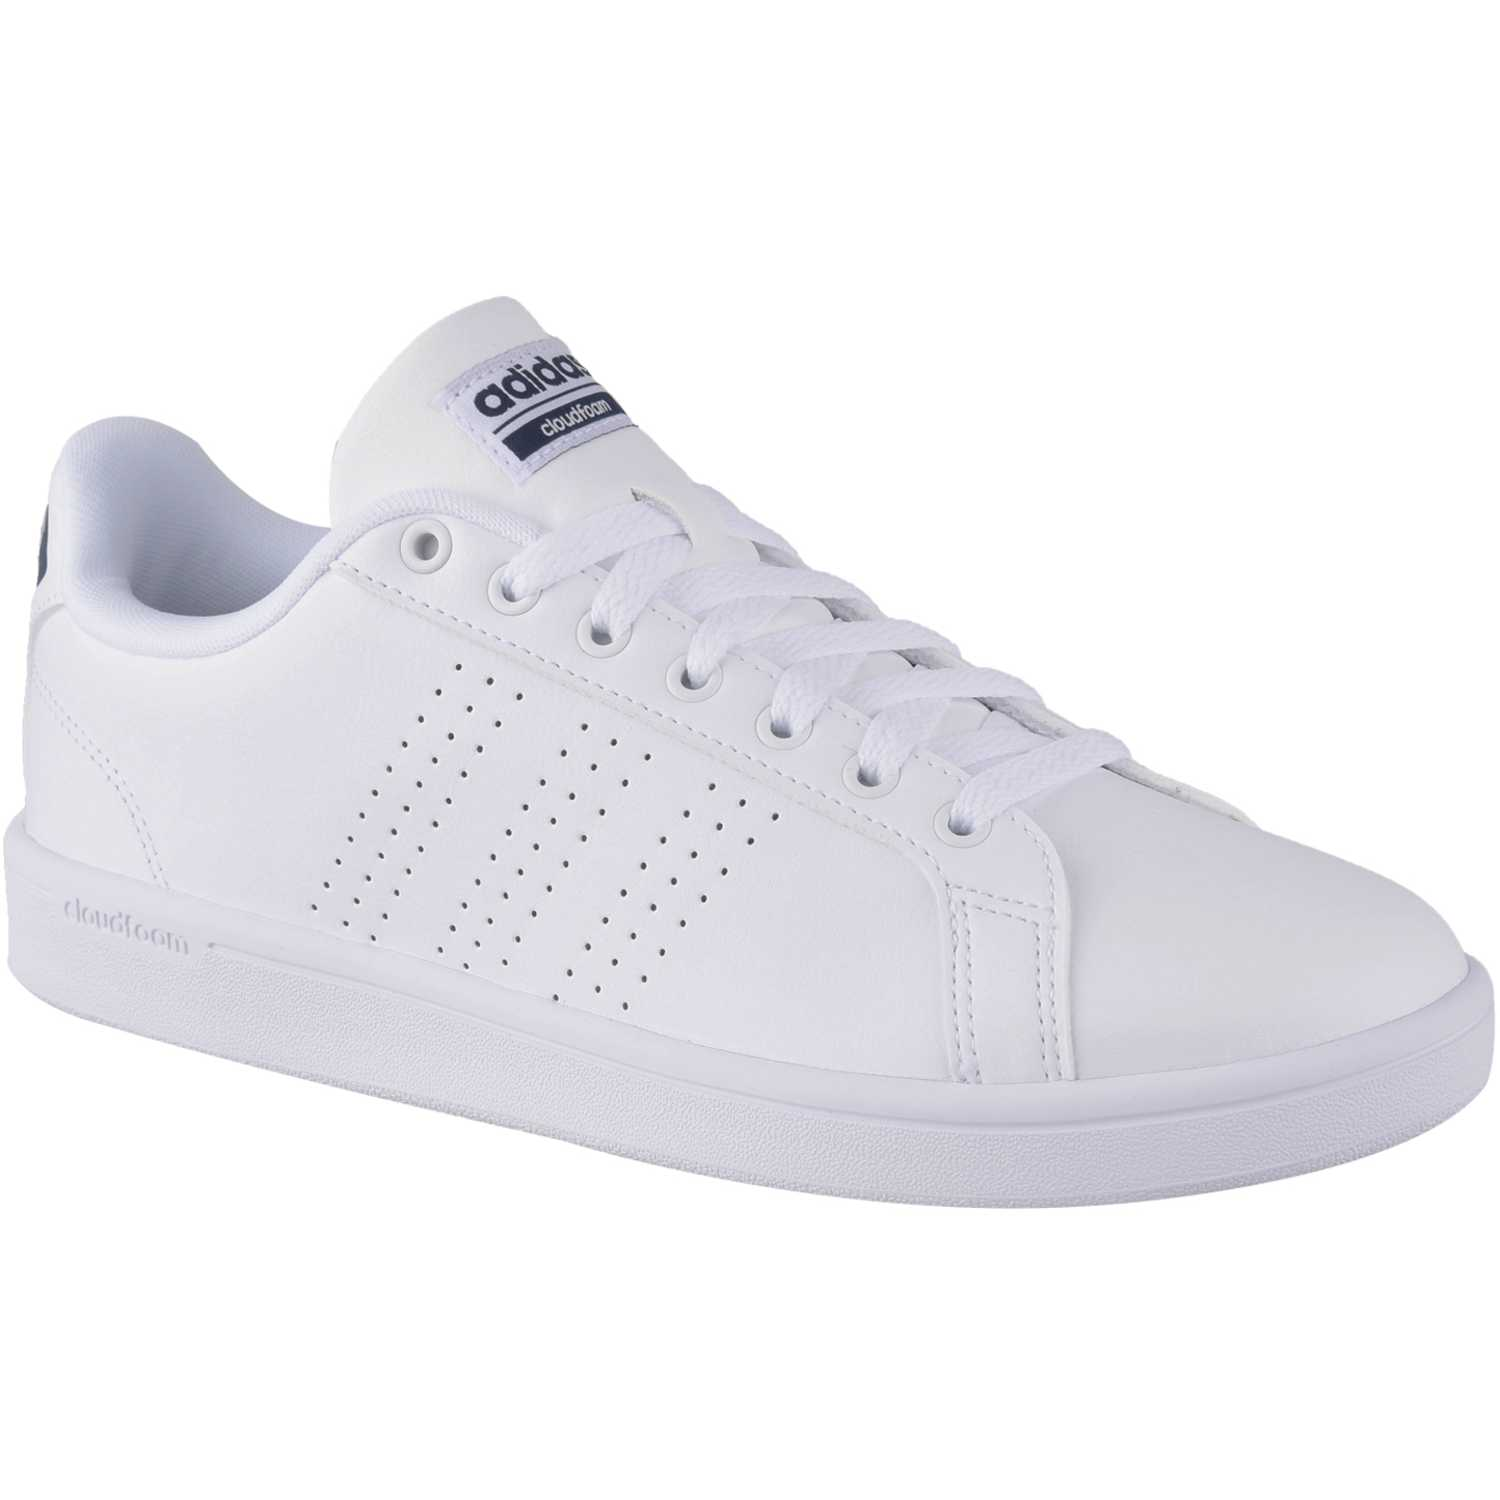 adidas NEO cf advantage cl Blanco Walking | platanitos.com